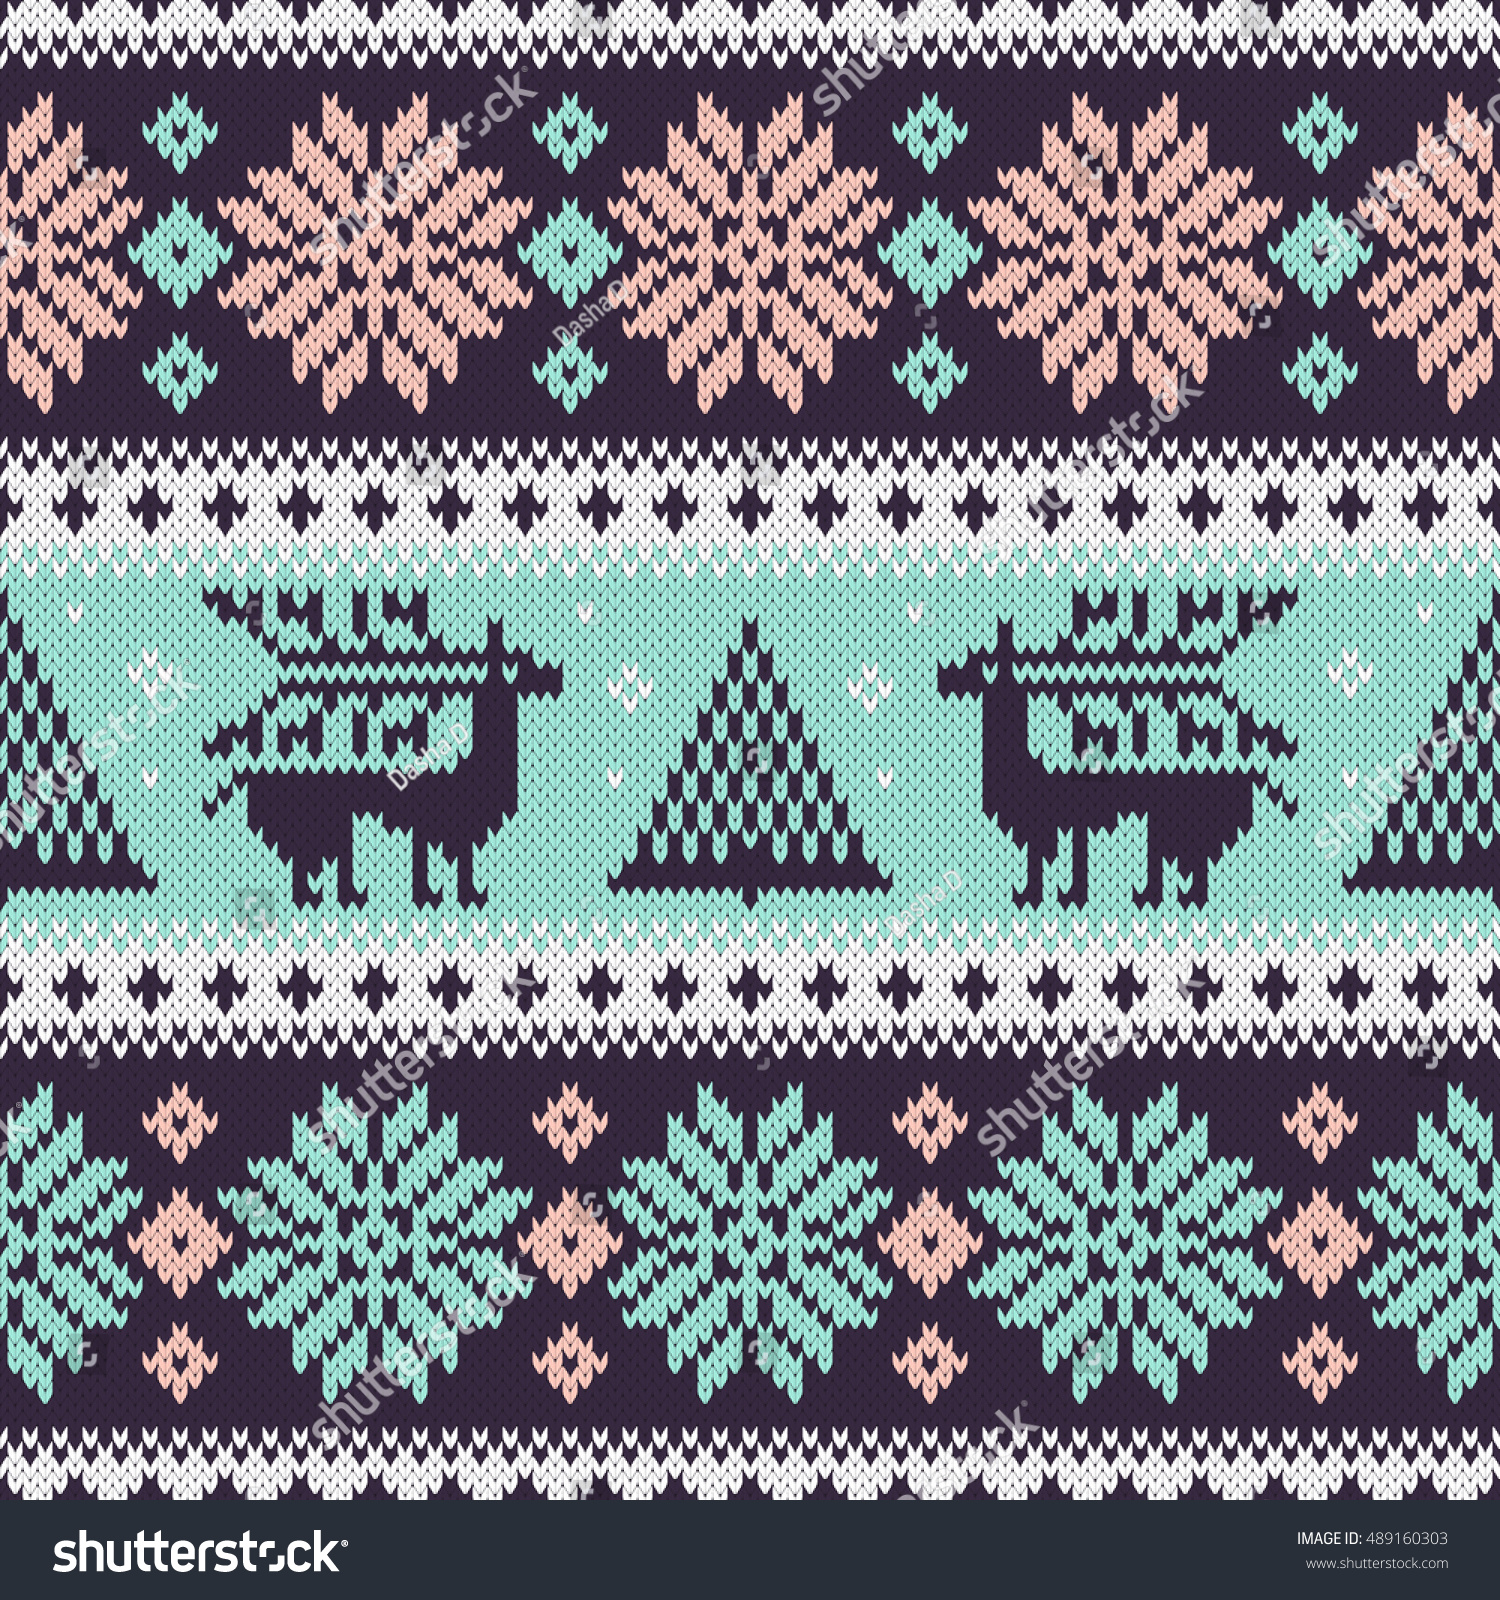 Seamless fir tree scandinavian pattern textile background wrapping - Seamless Knitting Pattern With Snowflakes Deer Fir And Other Winter Elements Colorful Christmas